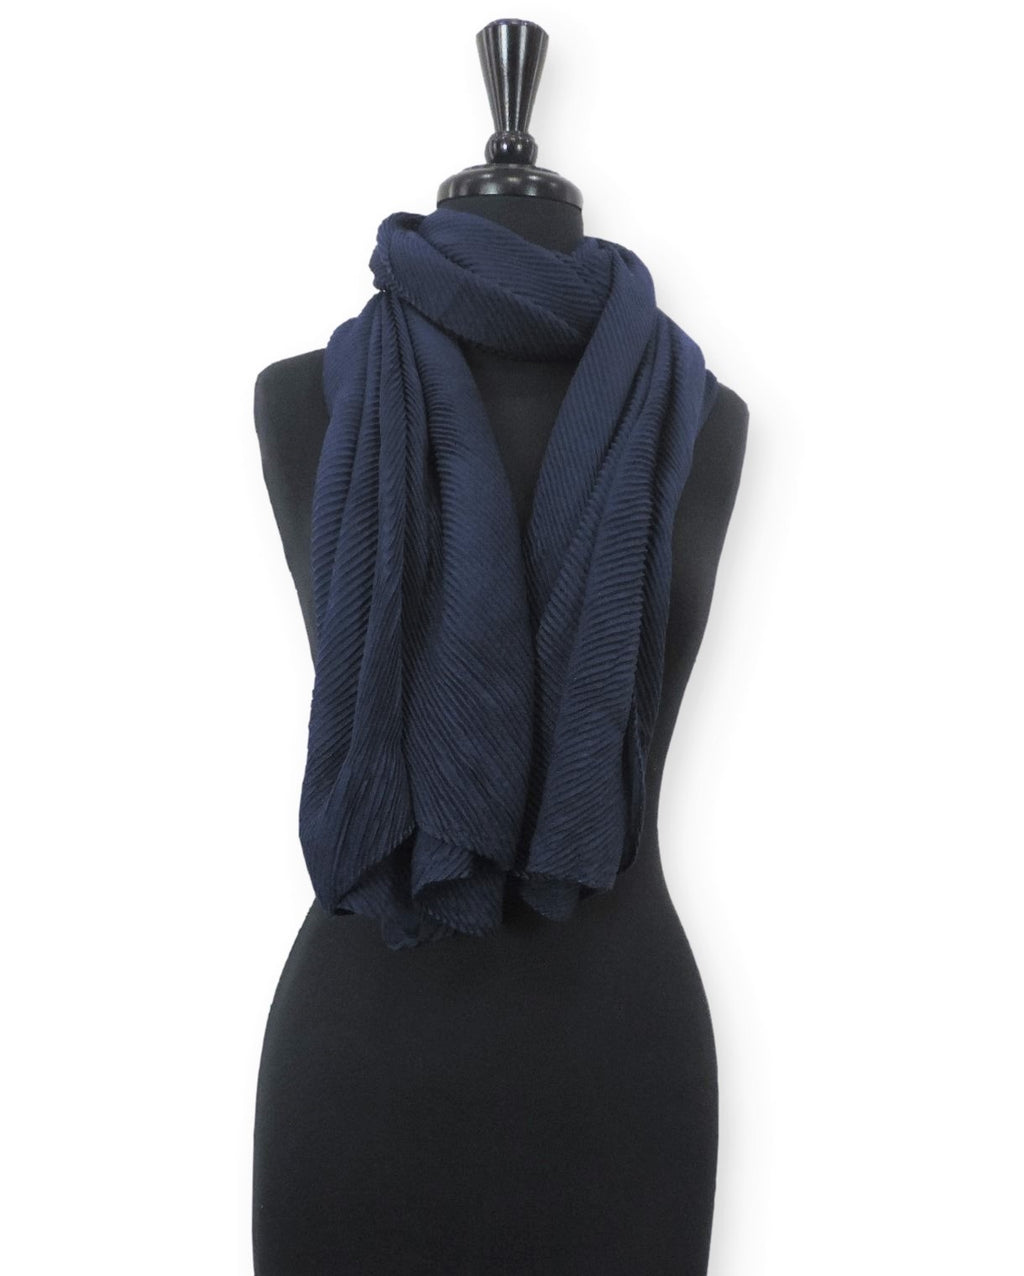 Navy Blue Cotton Wrinkle Scarf - Global Trendz Fashion®